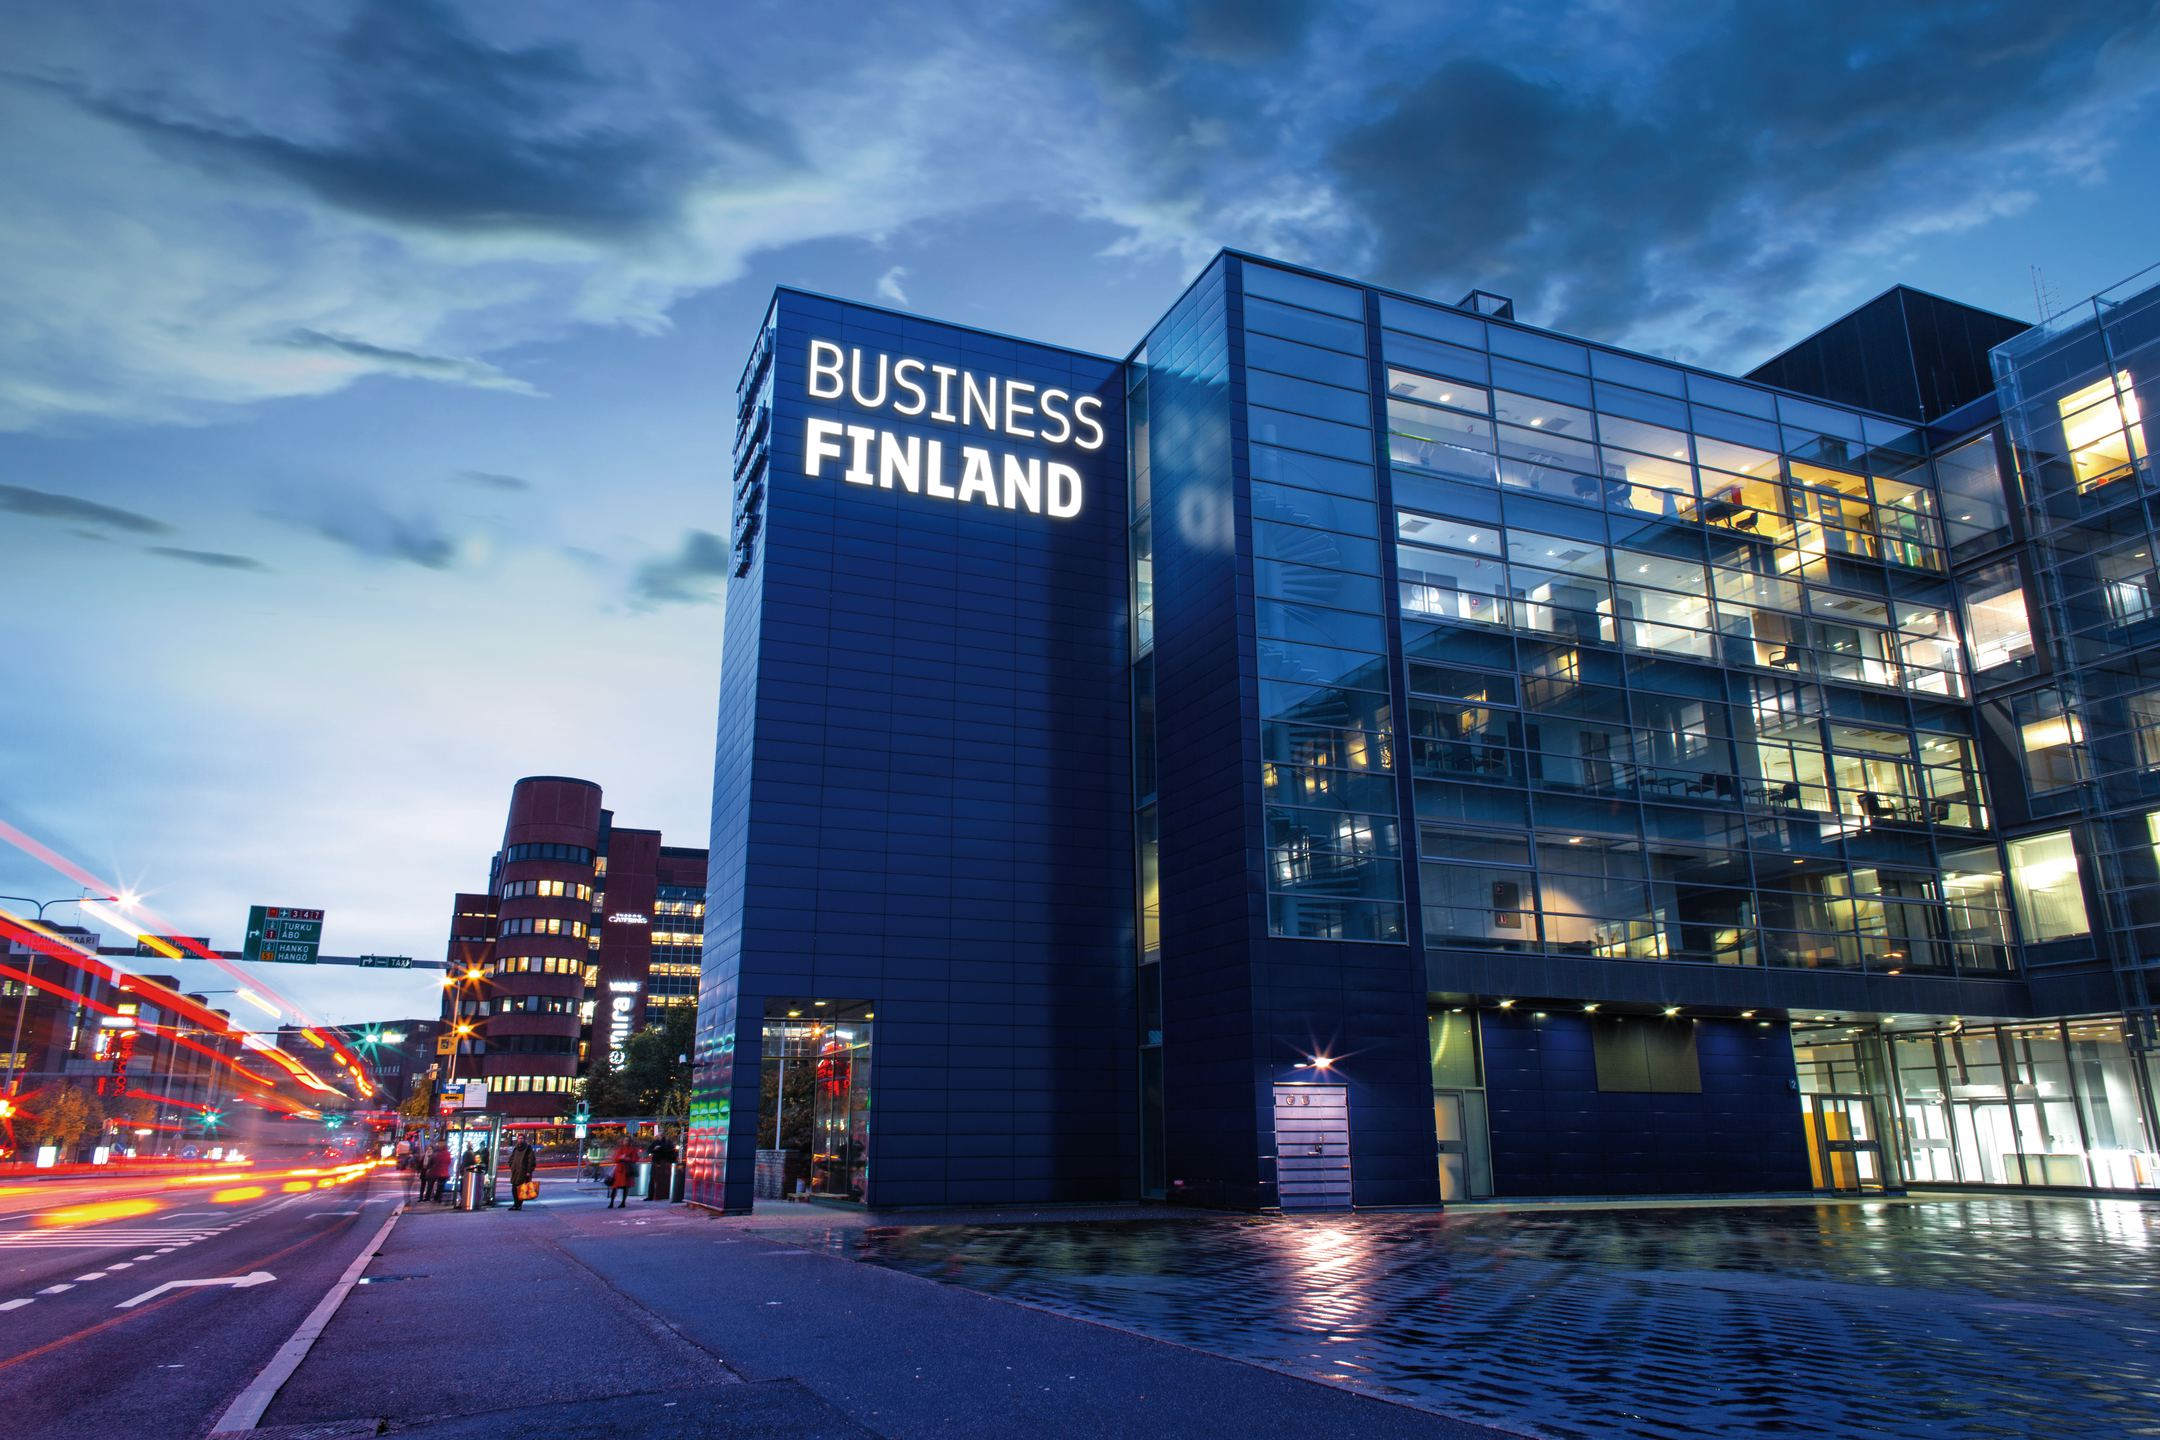 Business Finland is the Finnish government organization for innovation funding and trade, travel and investment promotion.